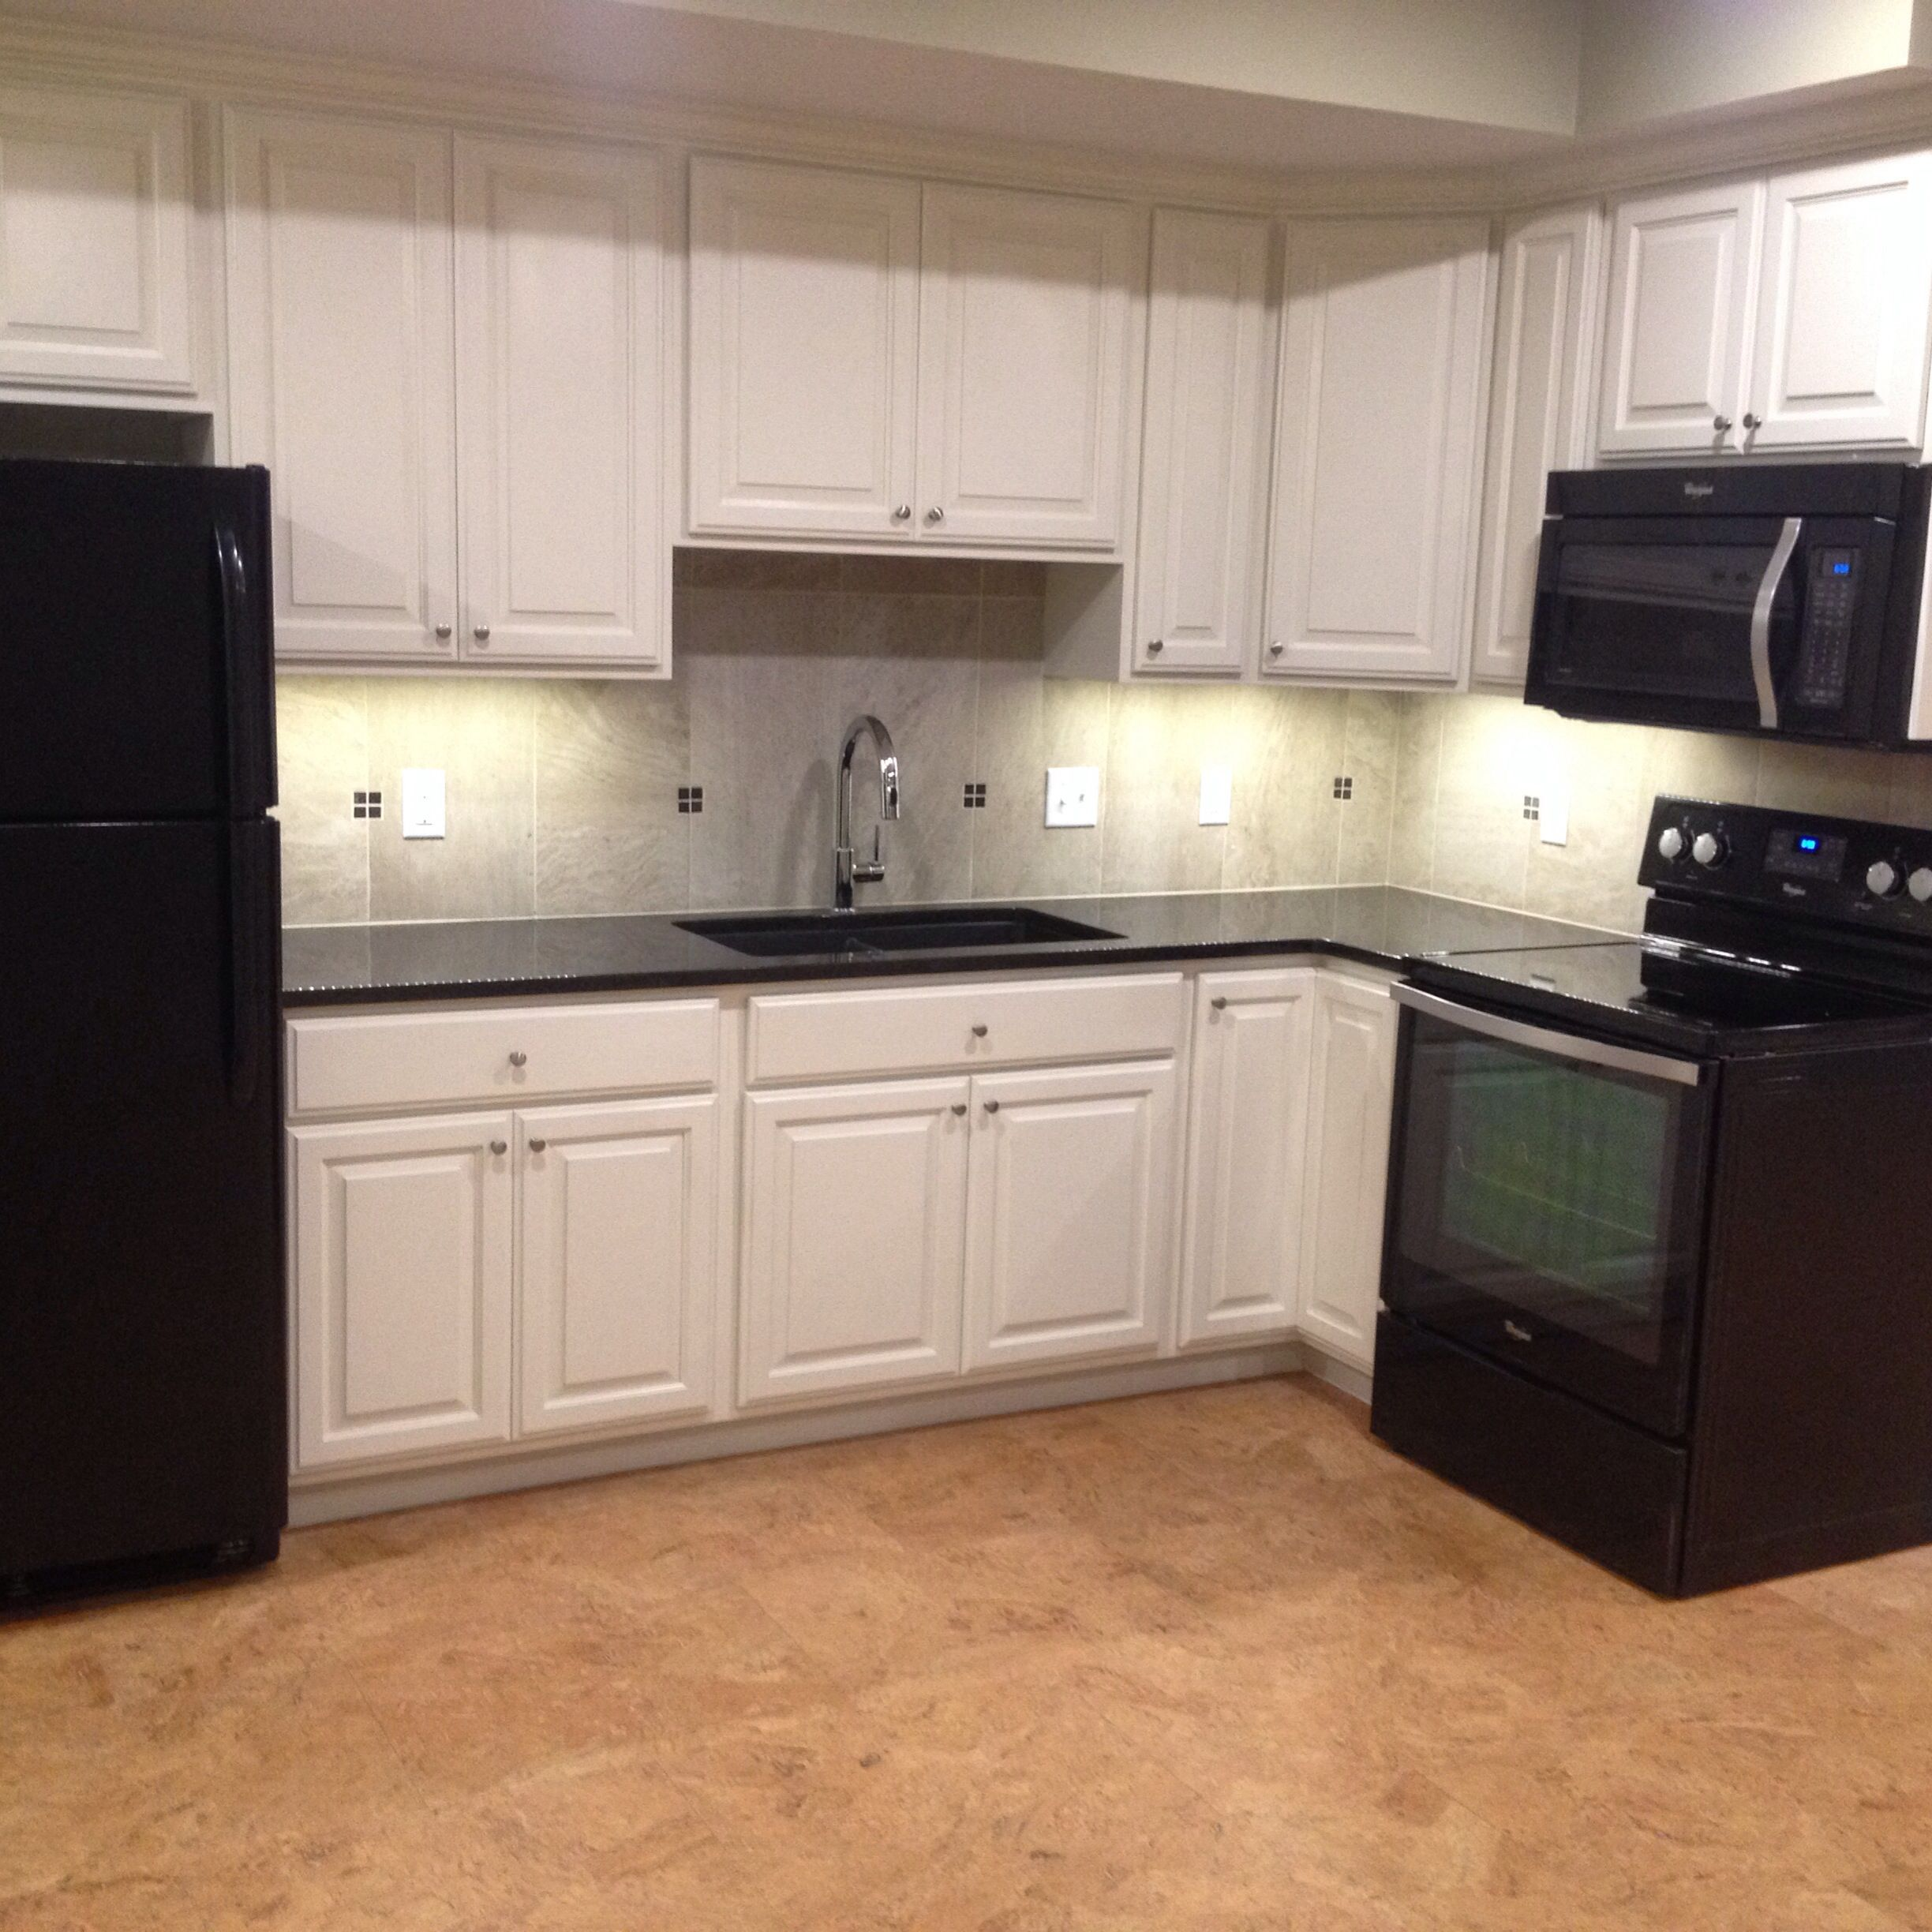 Undermount Lighting For Kitchen Cabinets: White Kitchen Cabinets, Black And Stainless Appliances